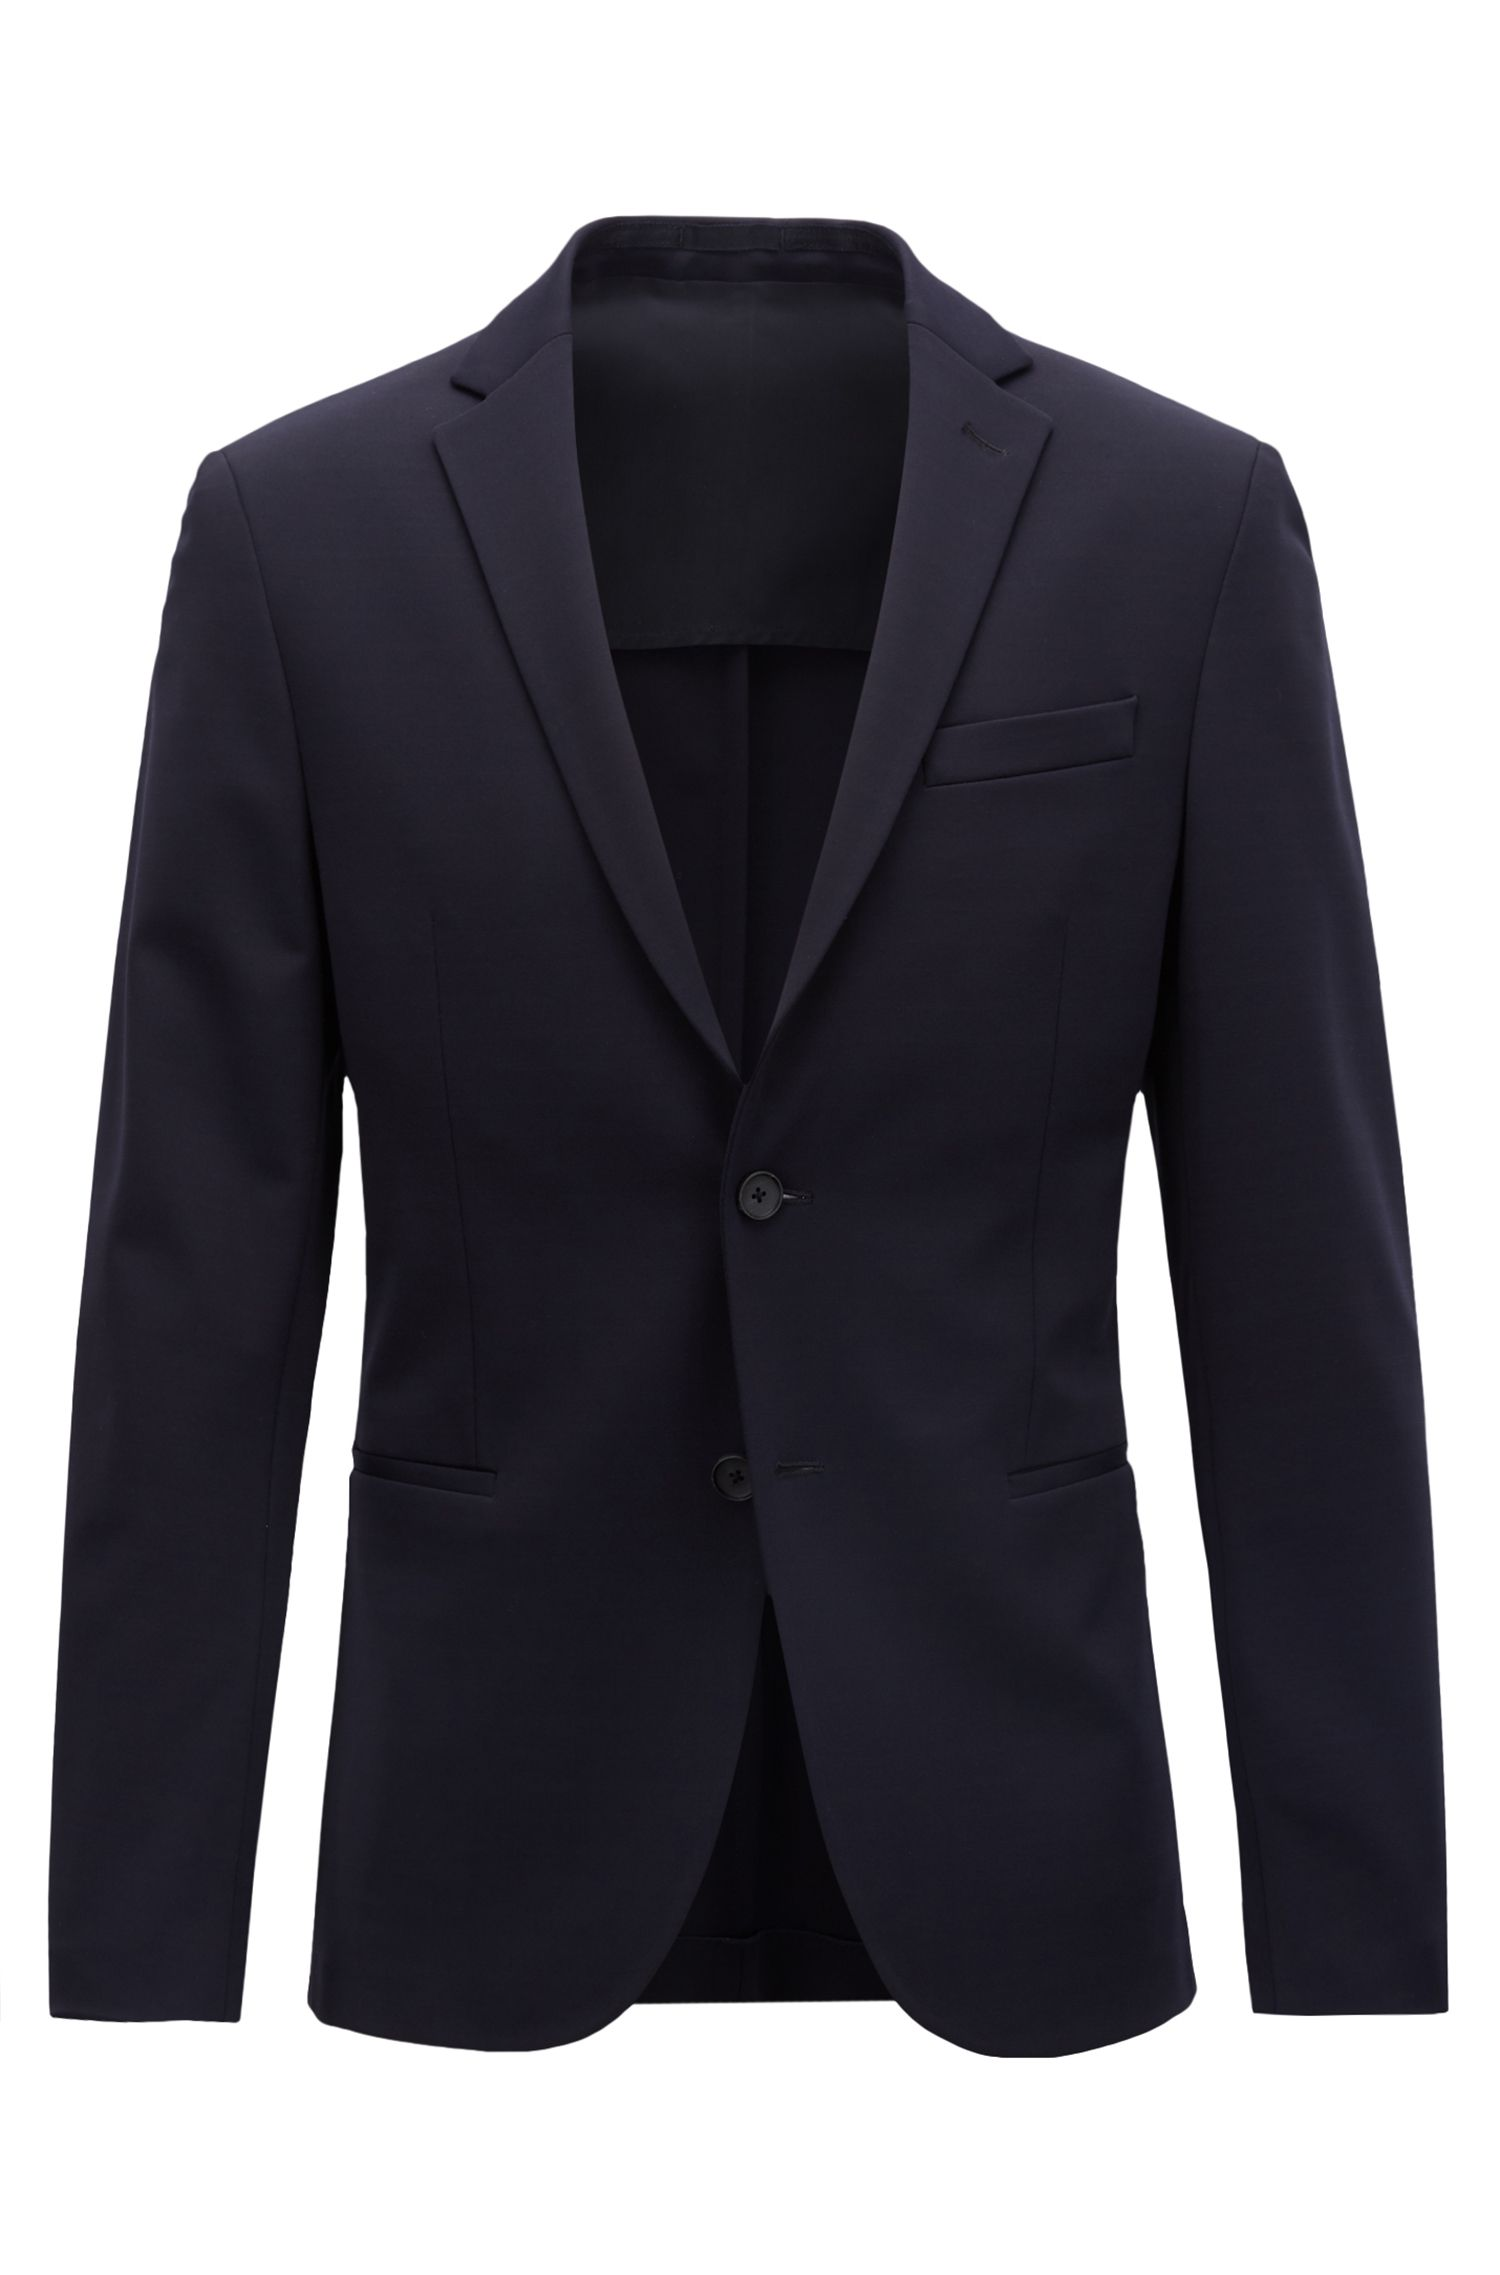 Slim-fit blazer in technical fabric with stretch lining